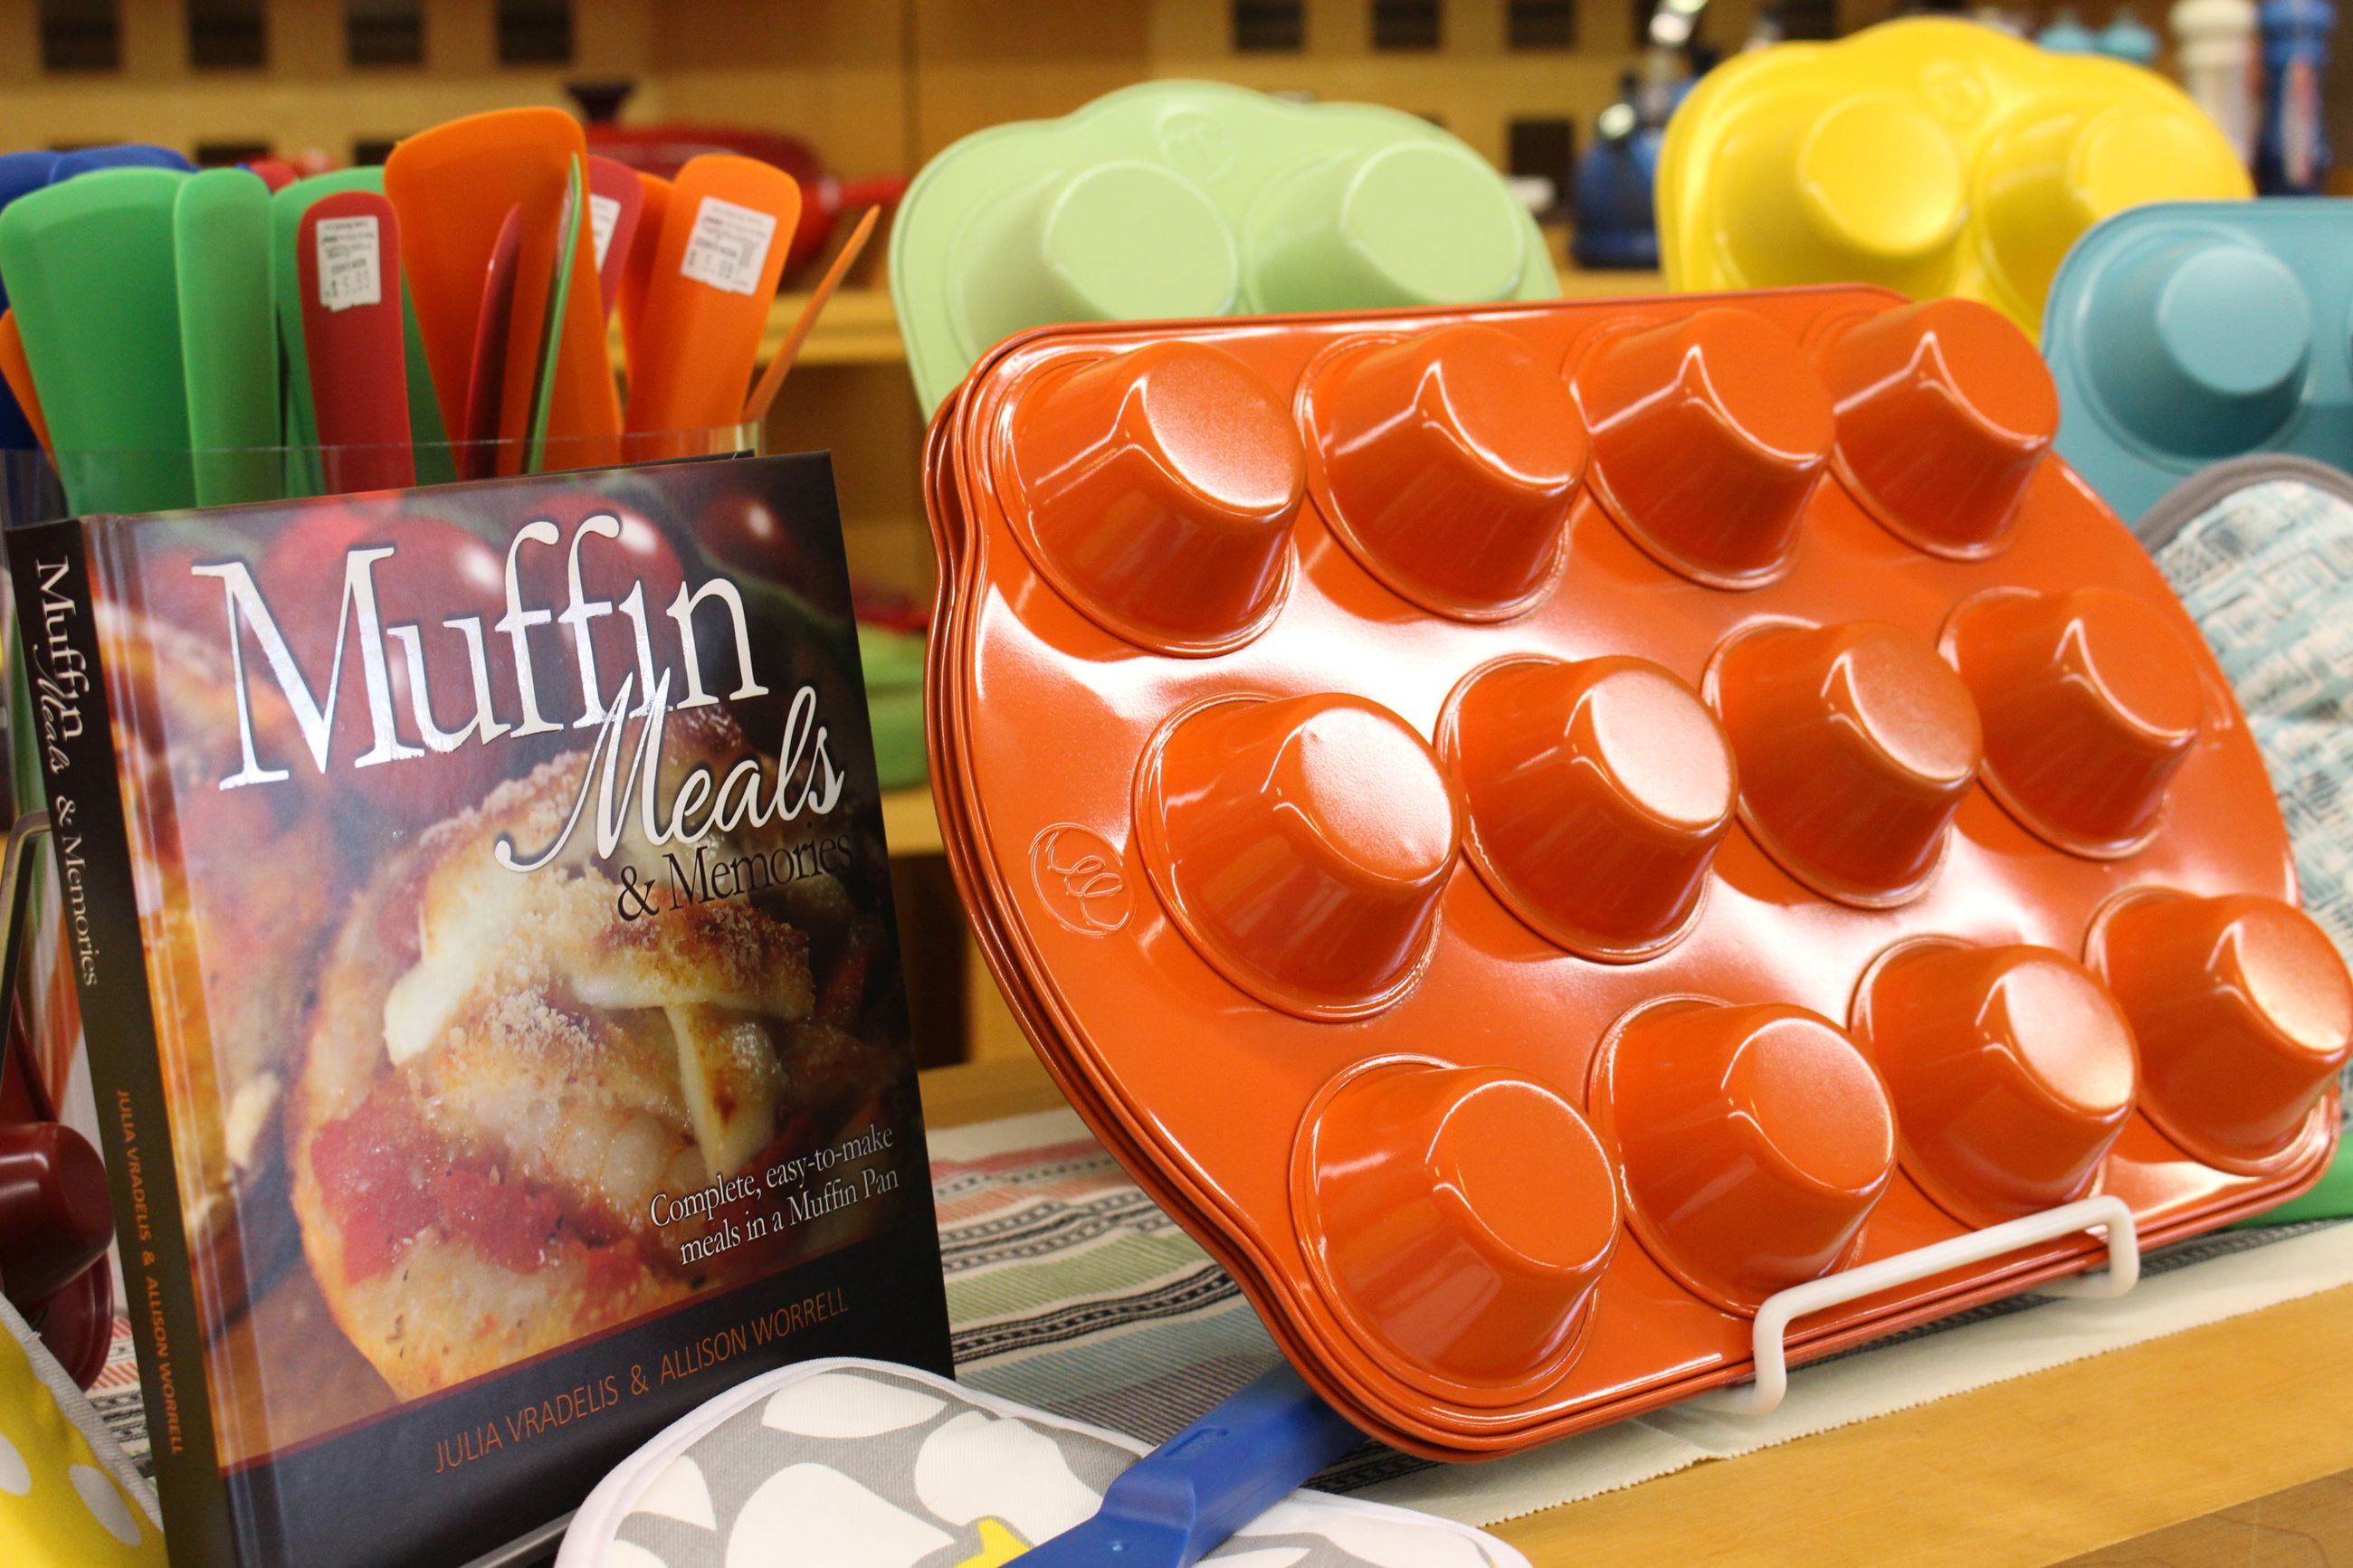 Orange muffin tin placed next to a muffin cookbook